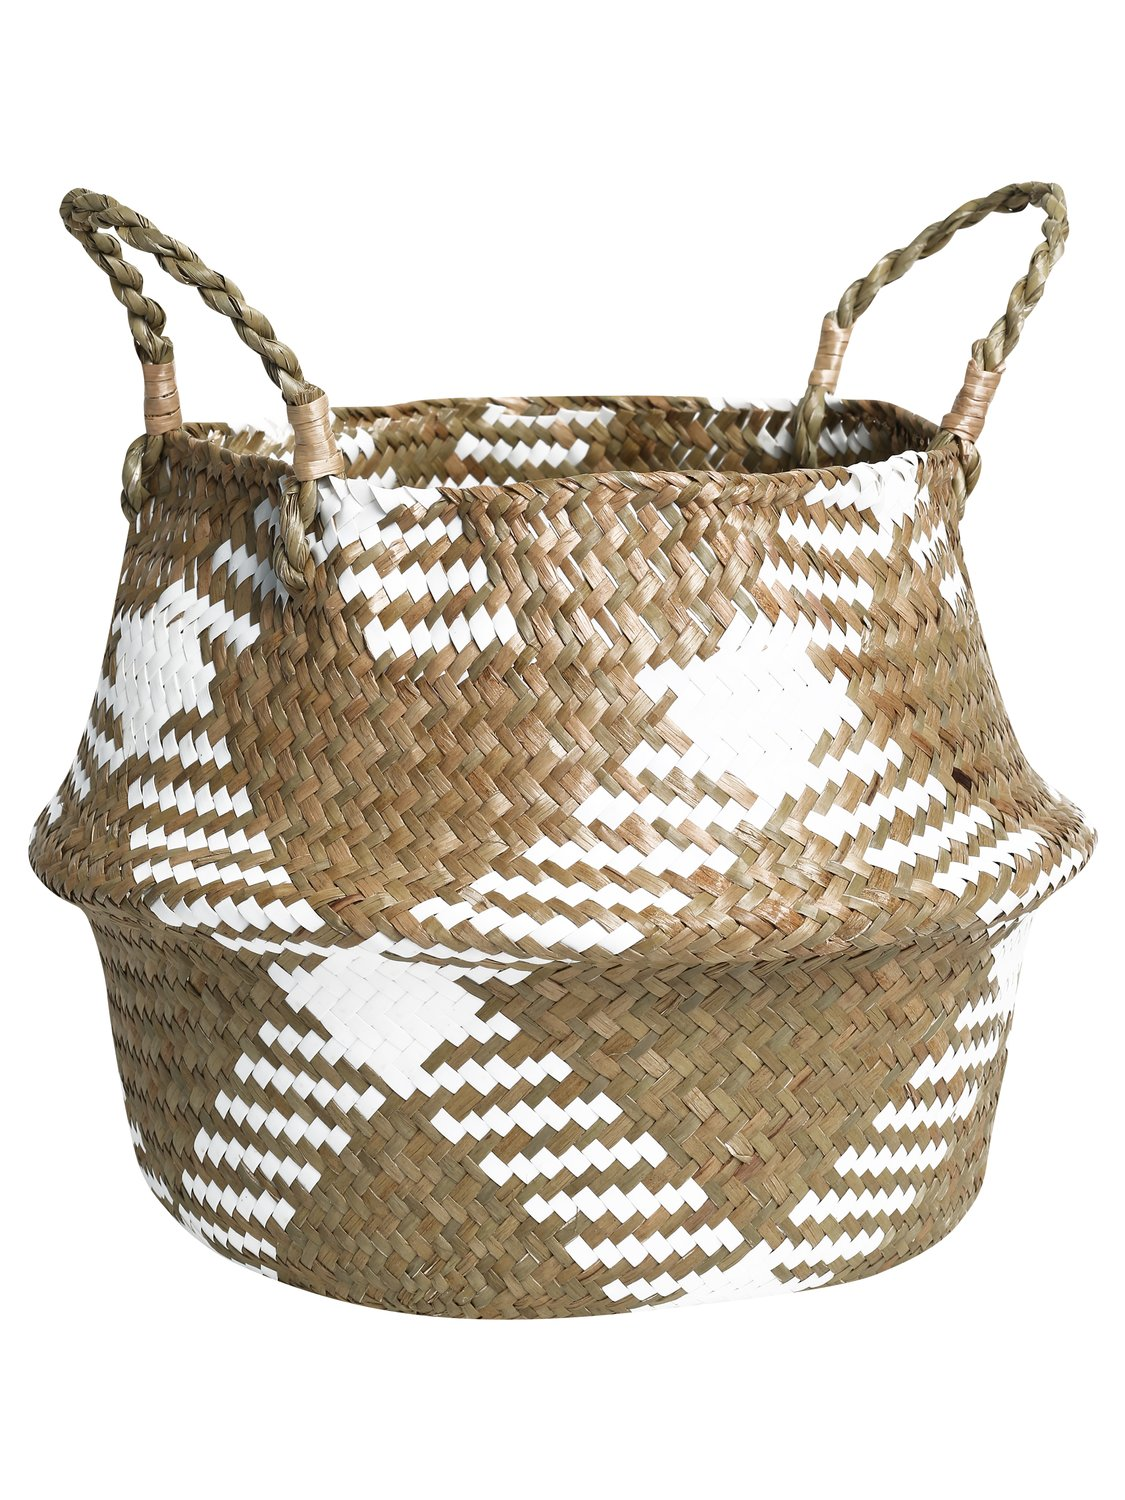 home woven basket check design with handles  - white